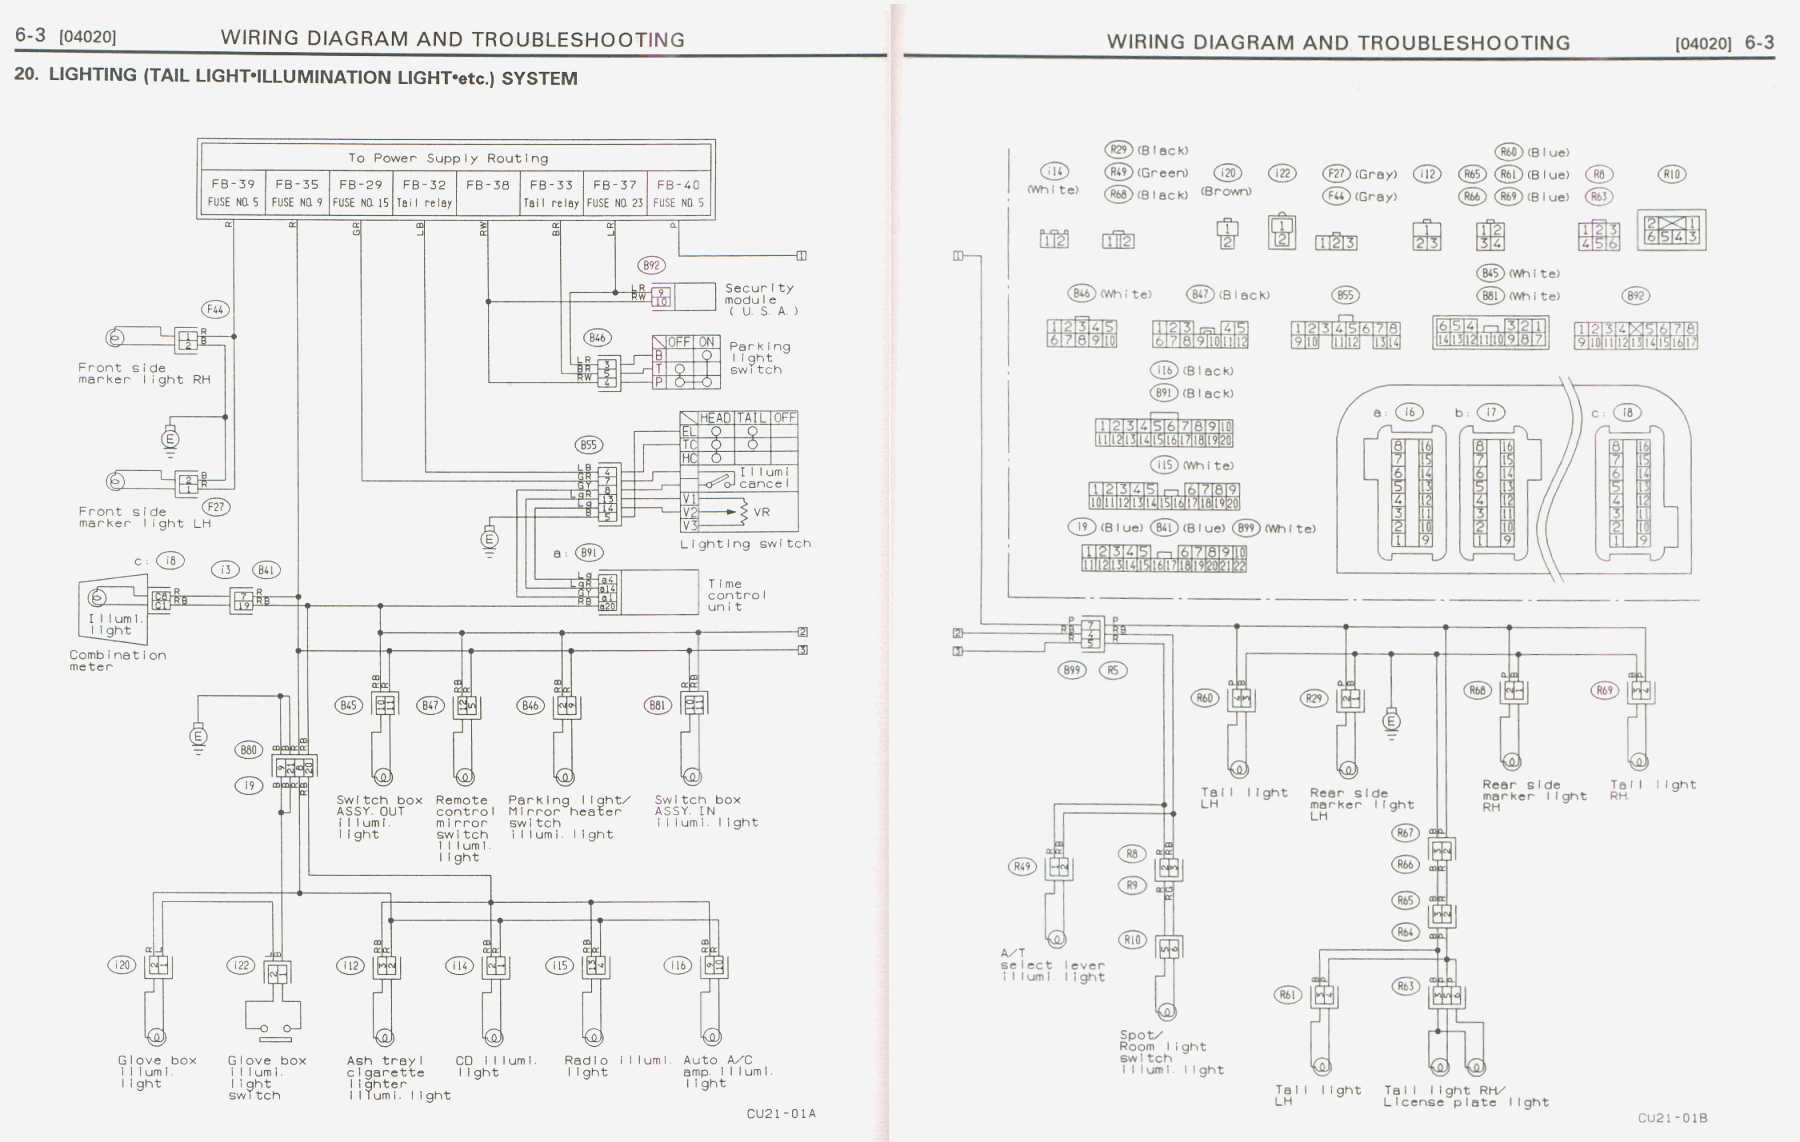 subaru svx alternator wiring diagram html